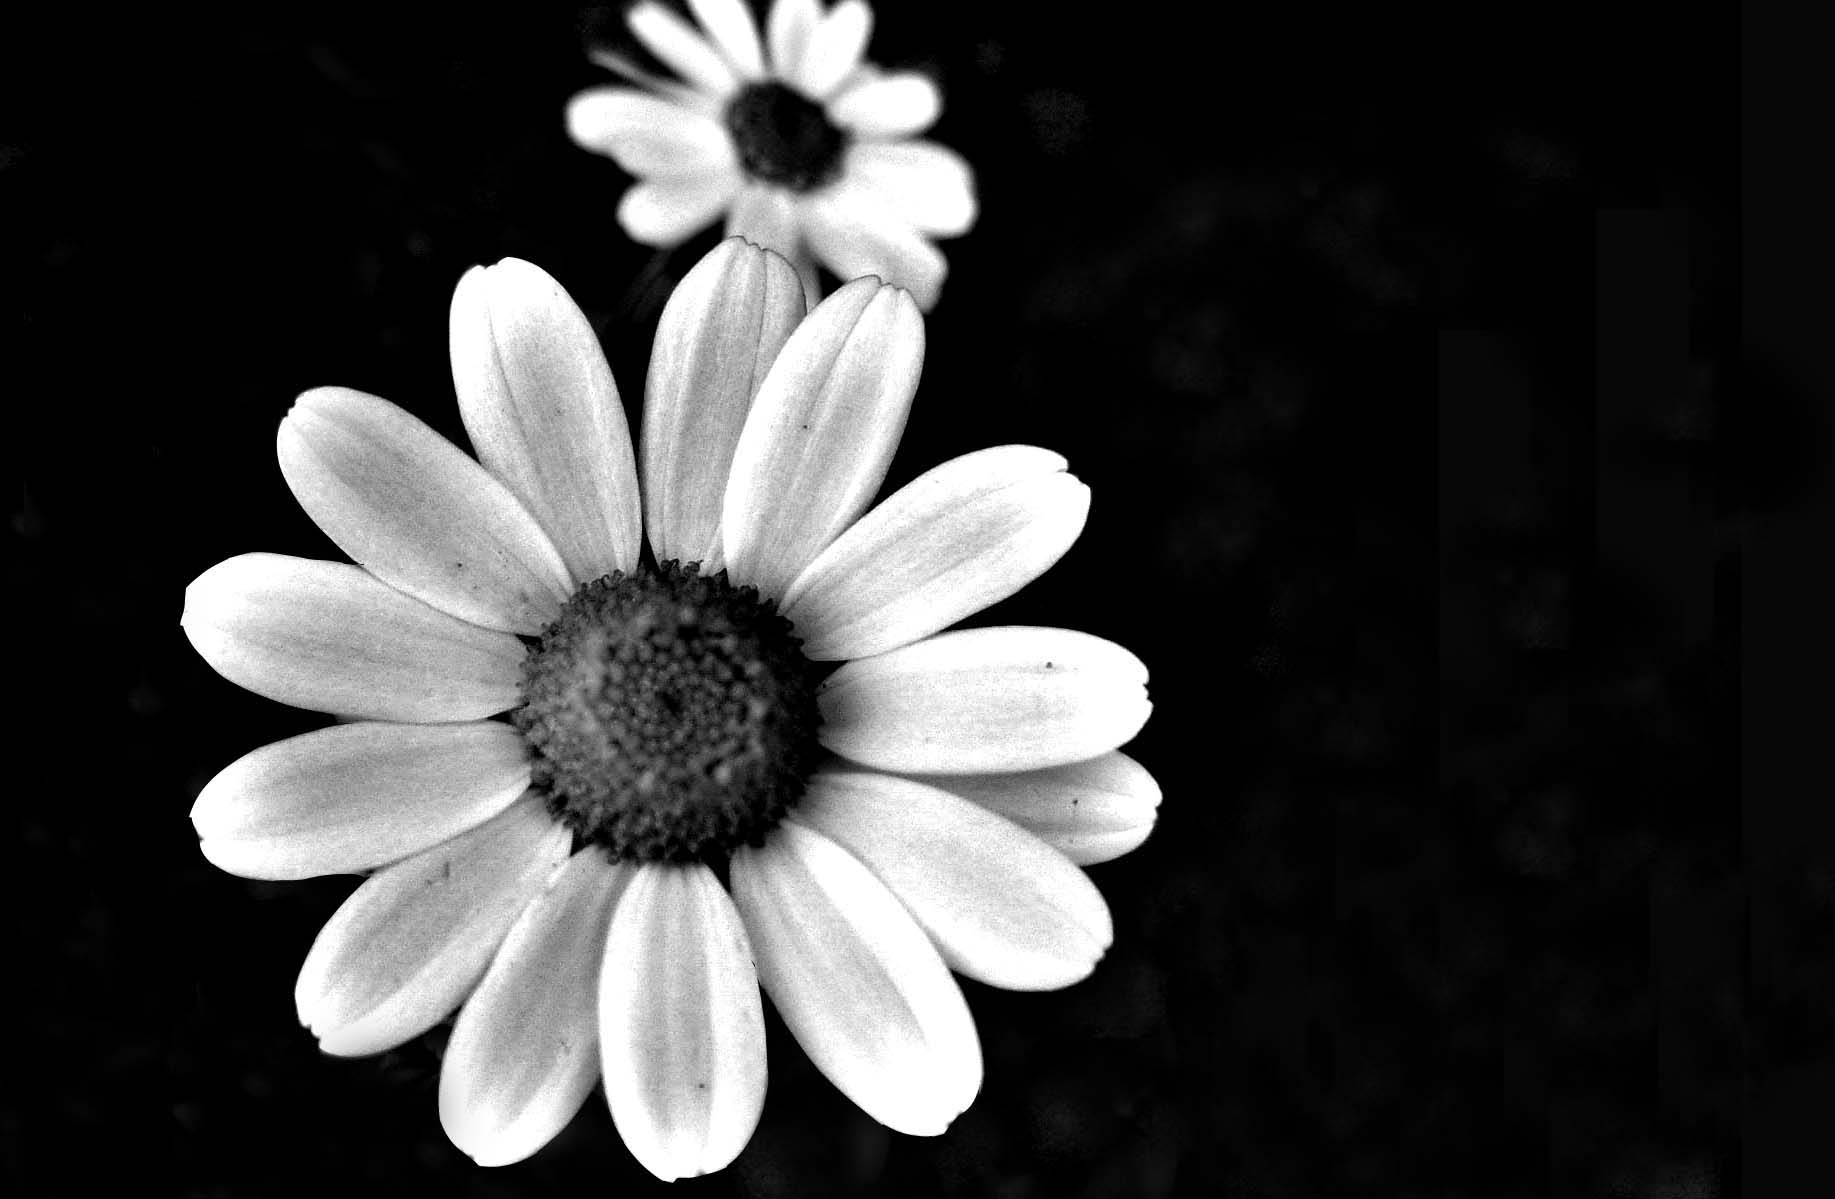 Black and white flowers tumblr photographyblack and white flowers